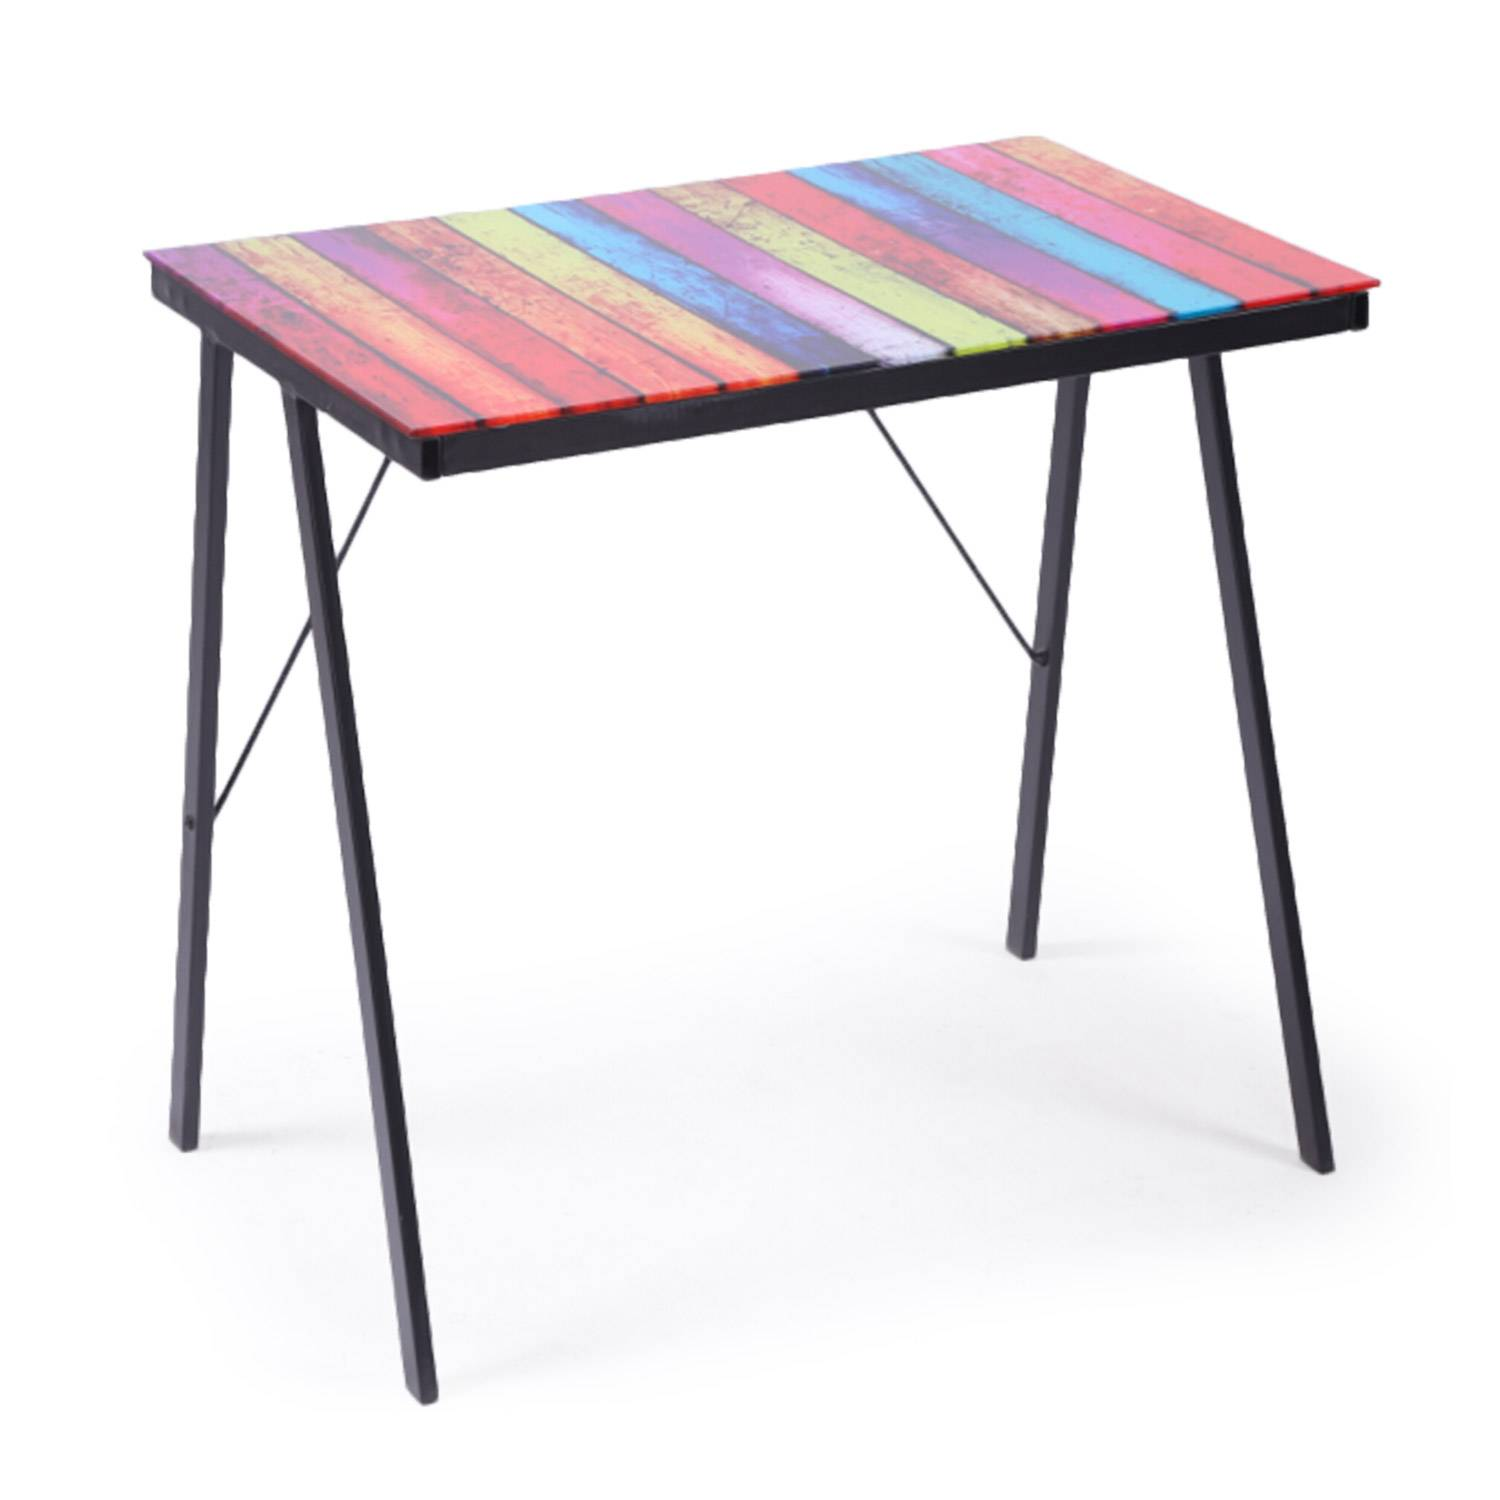 pied table pliante metal pied table pliante metal with pied table pliante metal tables ikea. Black Bedroom Furniture Sets. Home Design Ideas